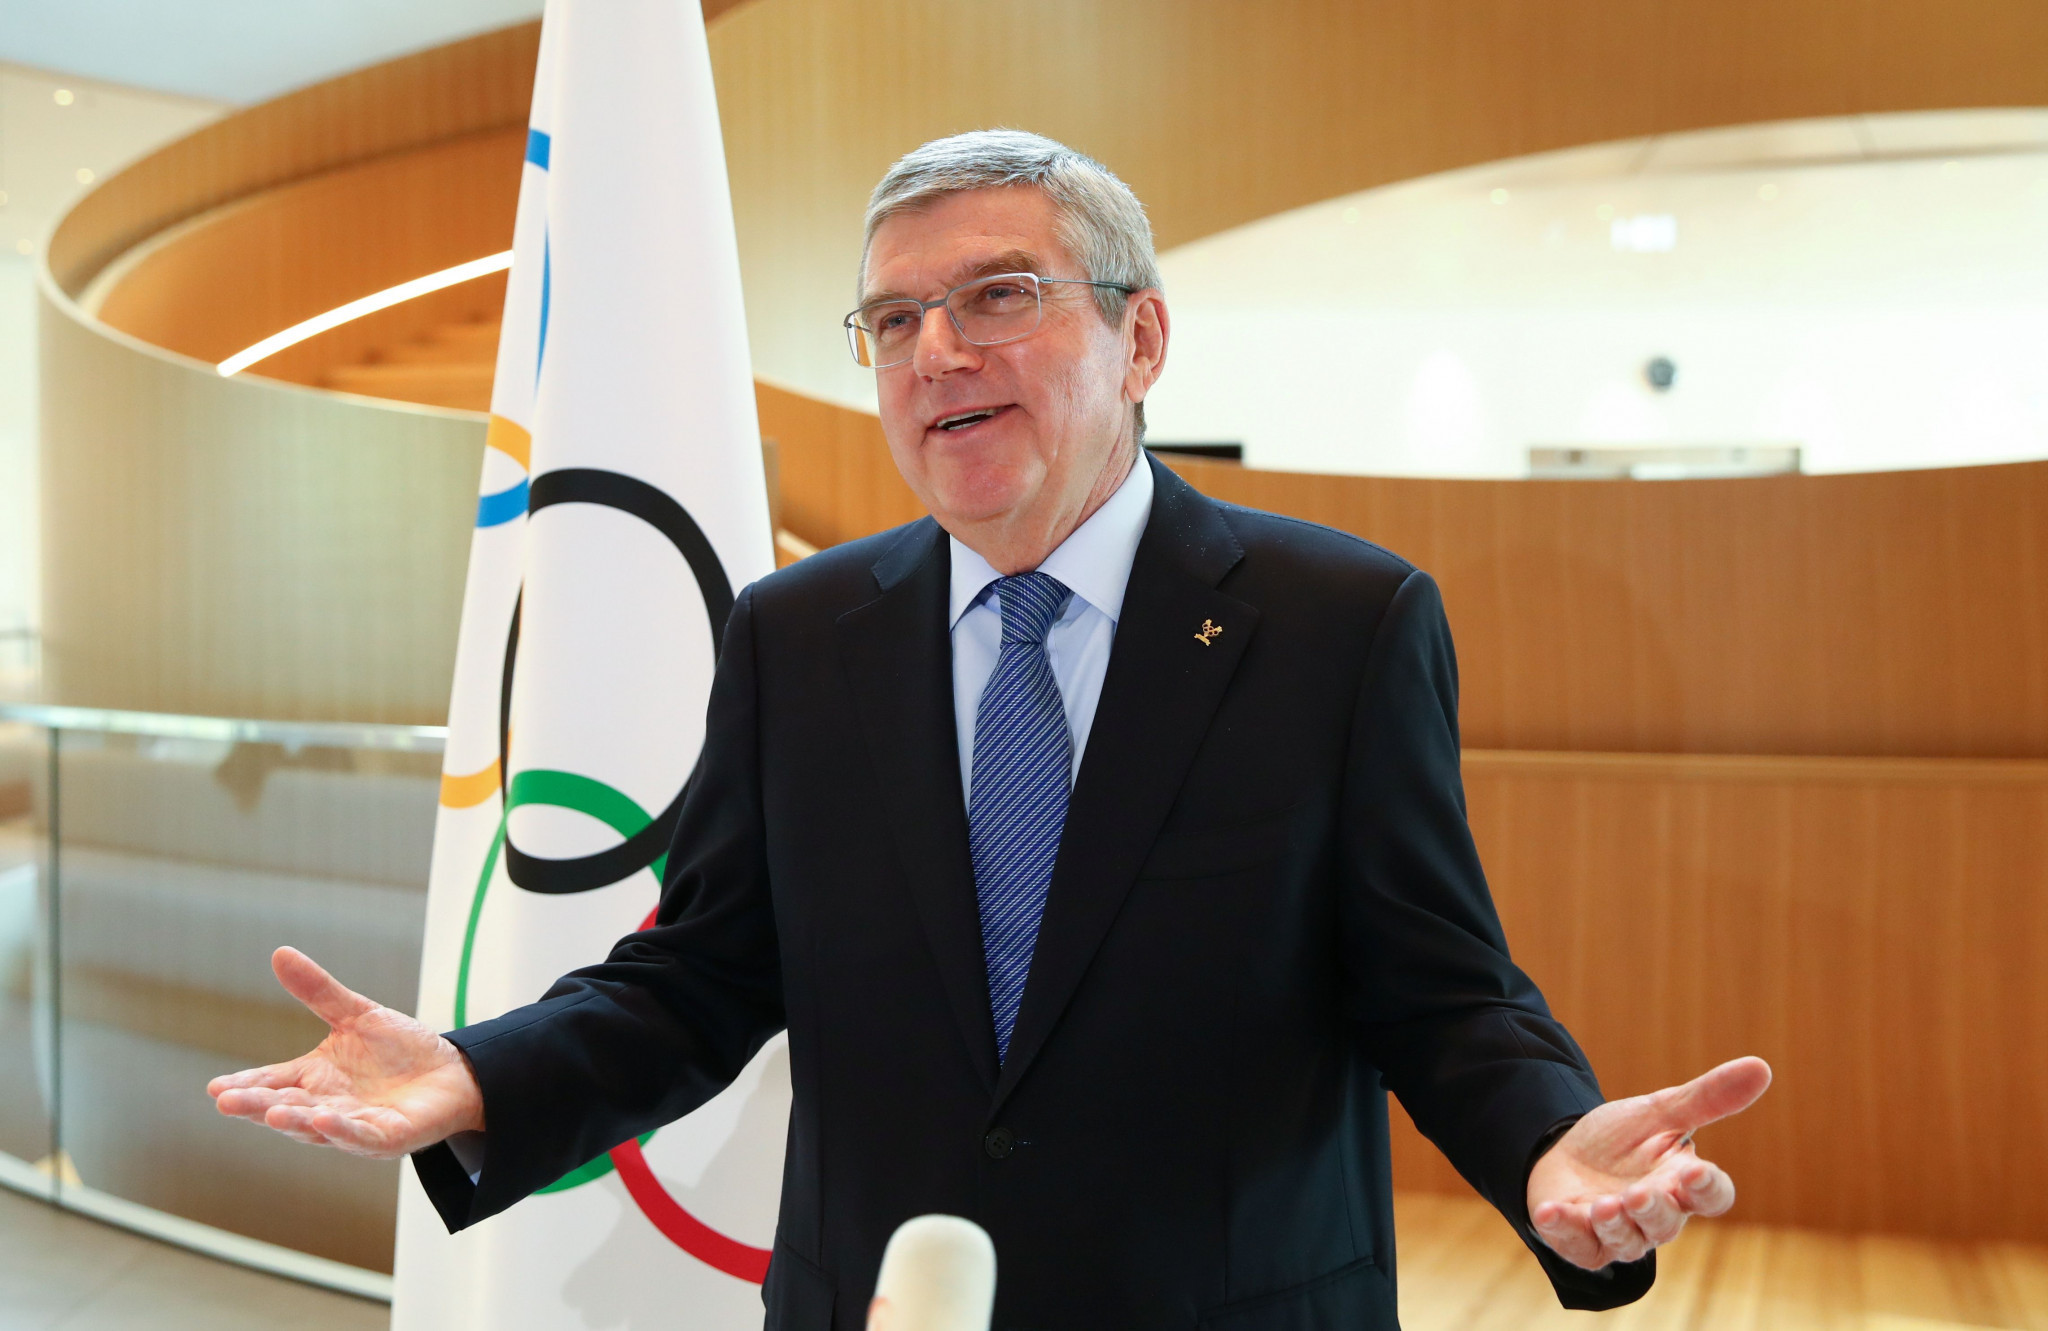 Thomas Bach faces his most challenging period as IOC President ©Getty Images